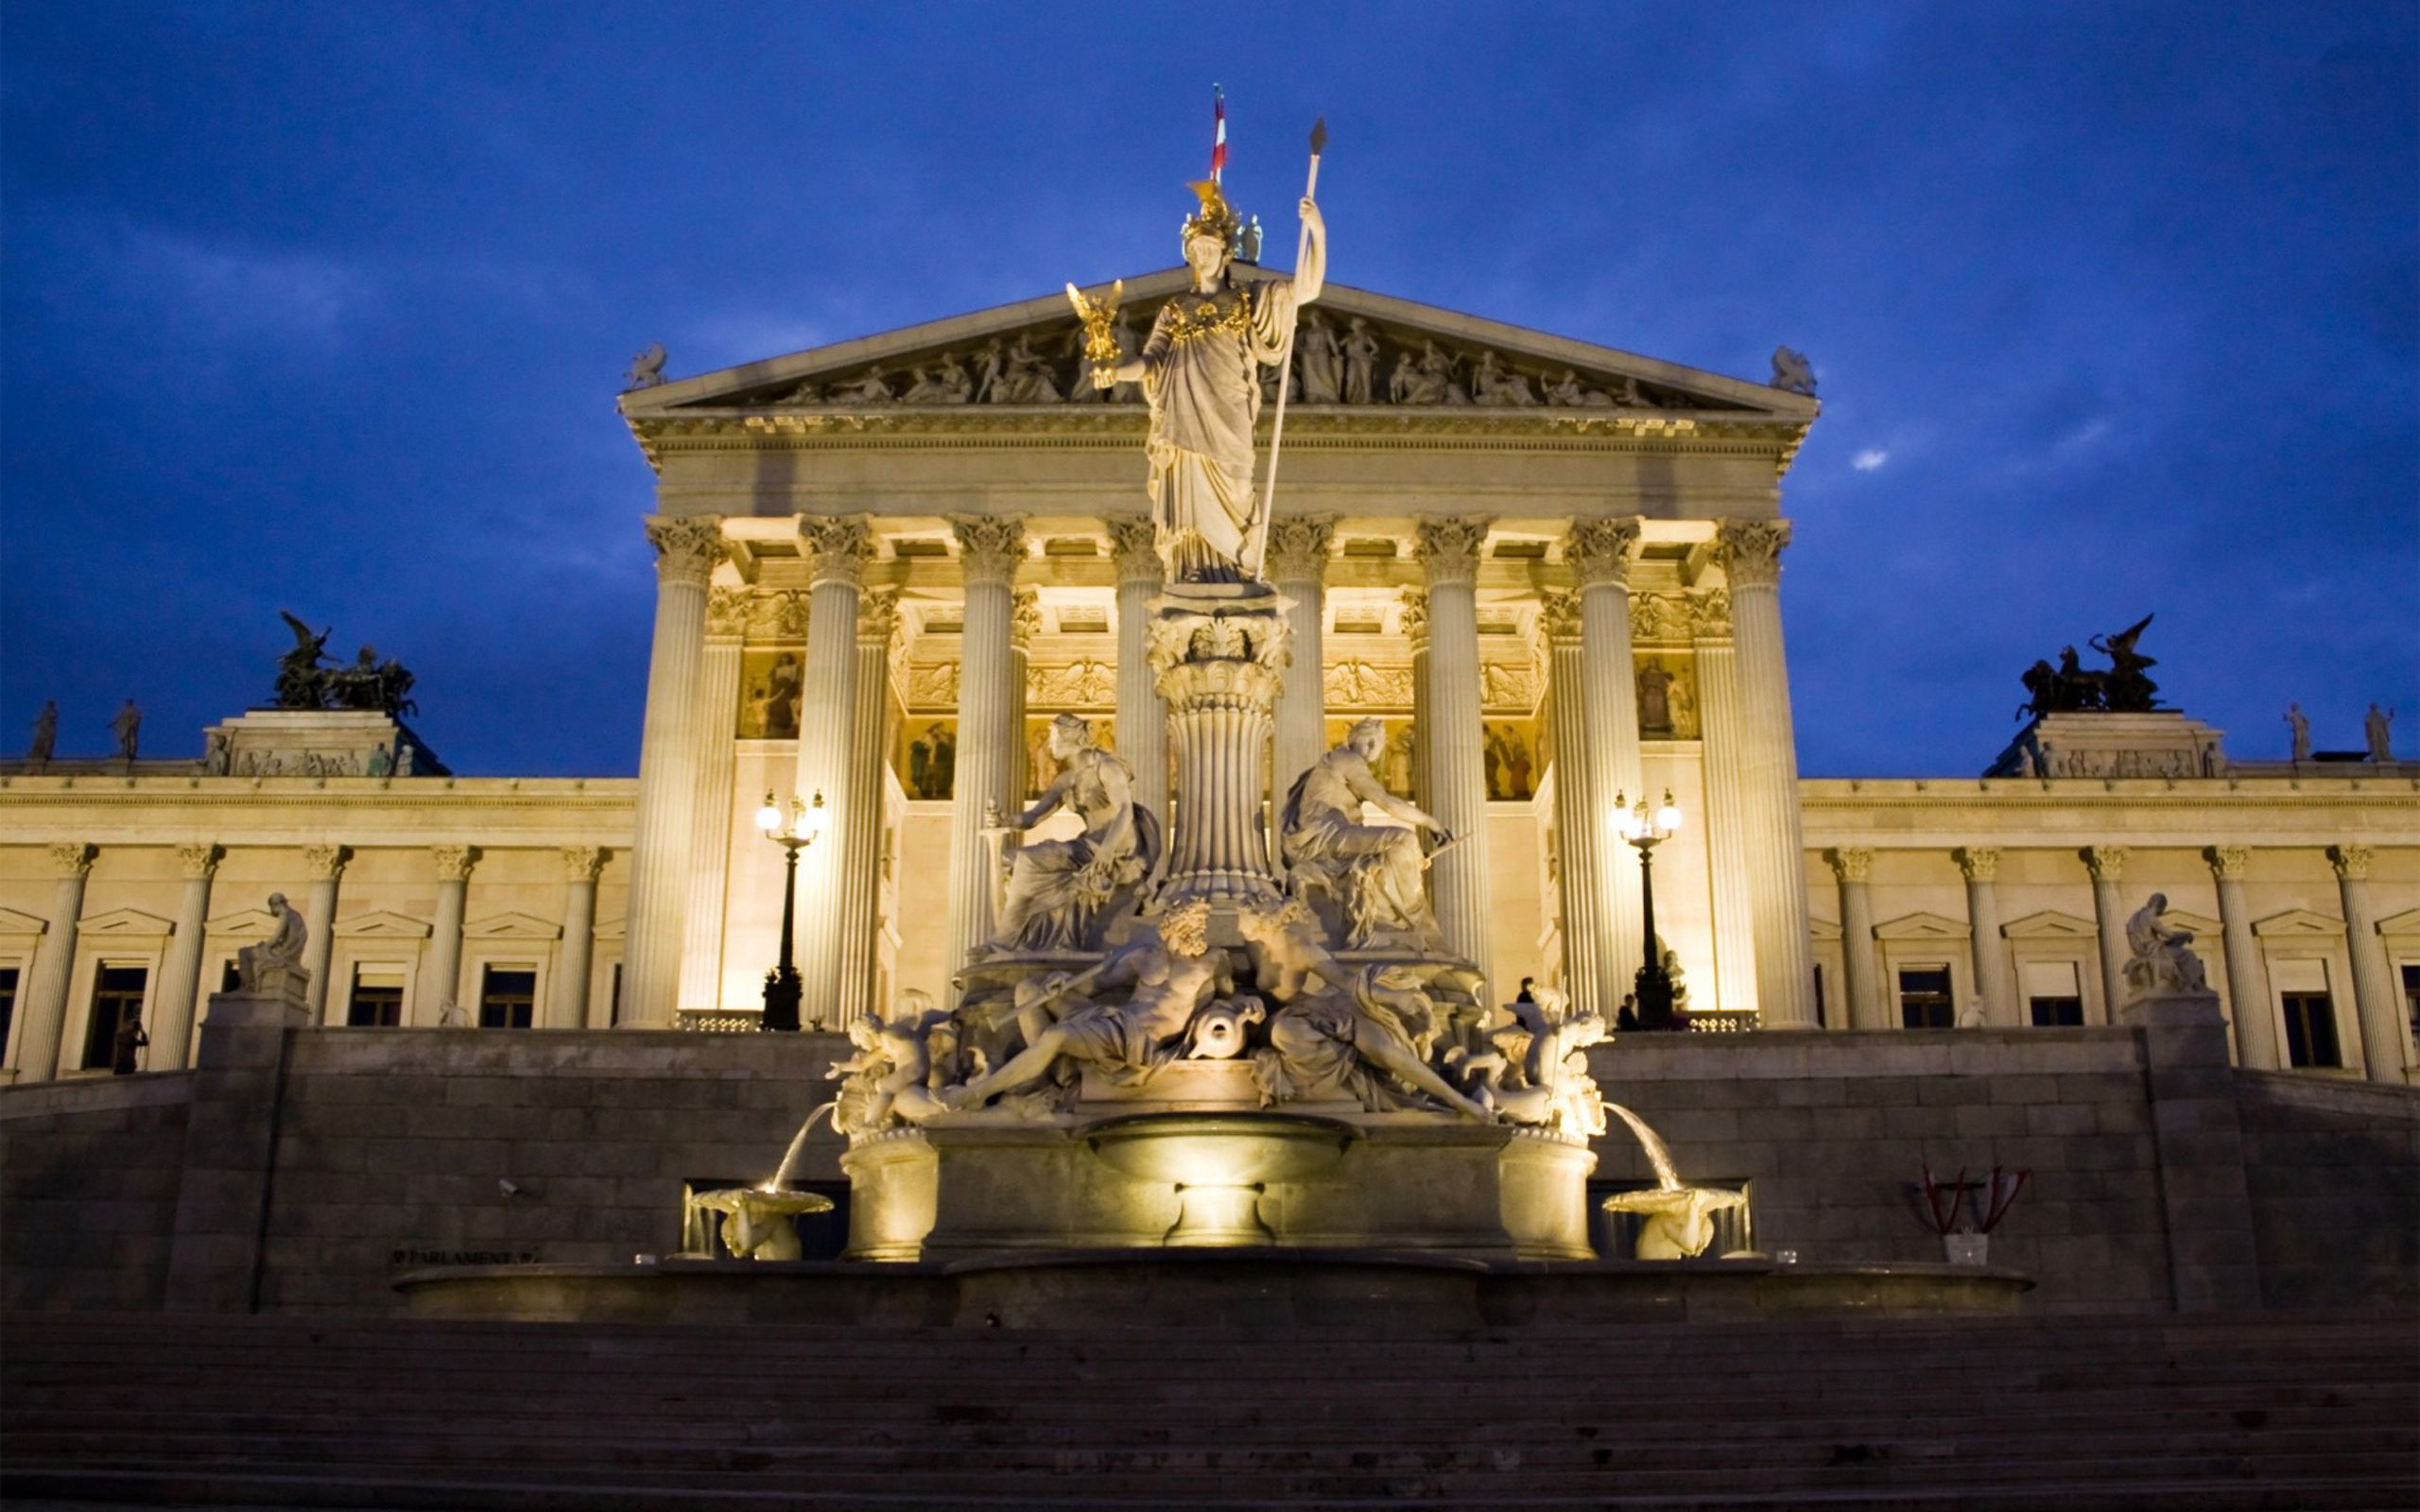 download reconsidering constitutional formation i national sovereignty a comparative analysis of the juridification by